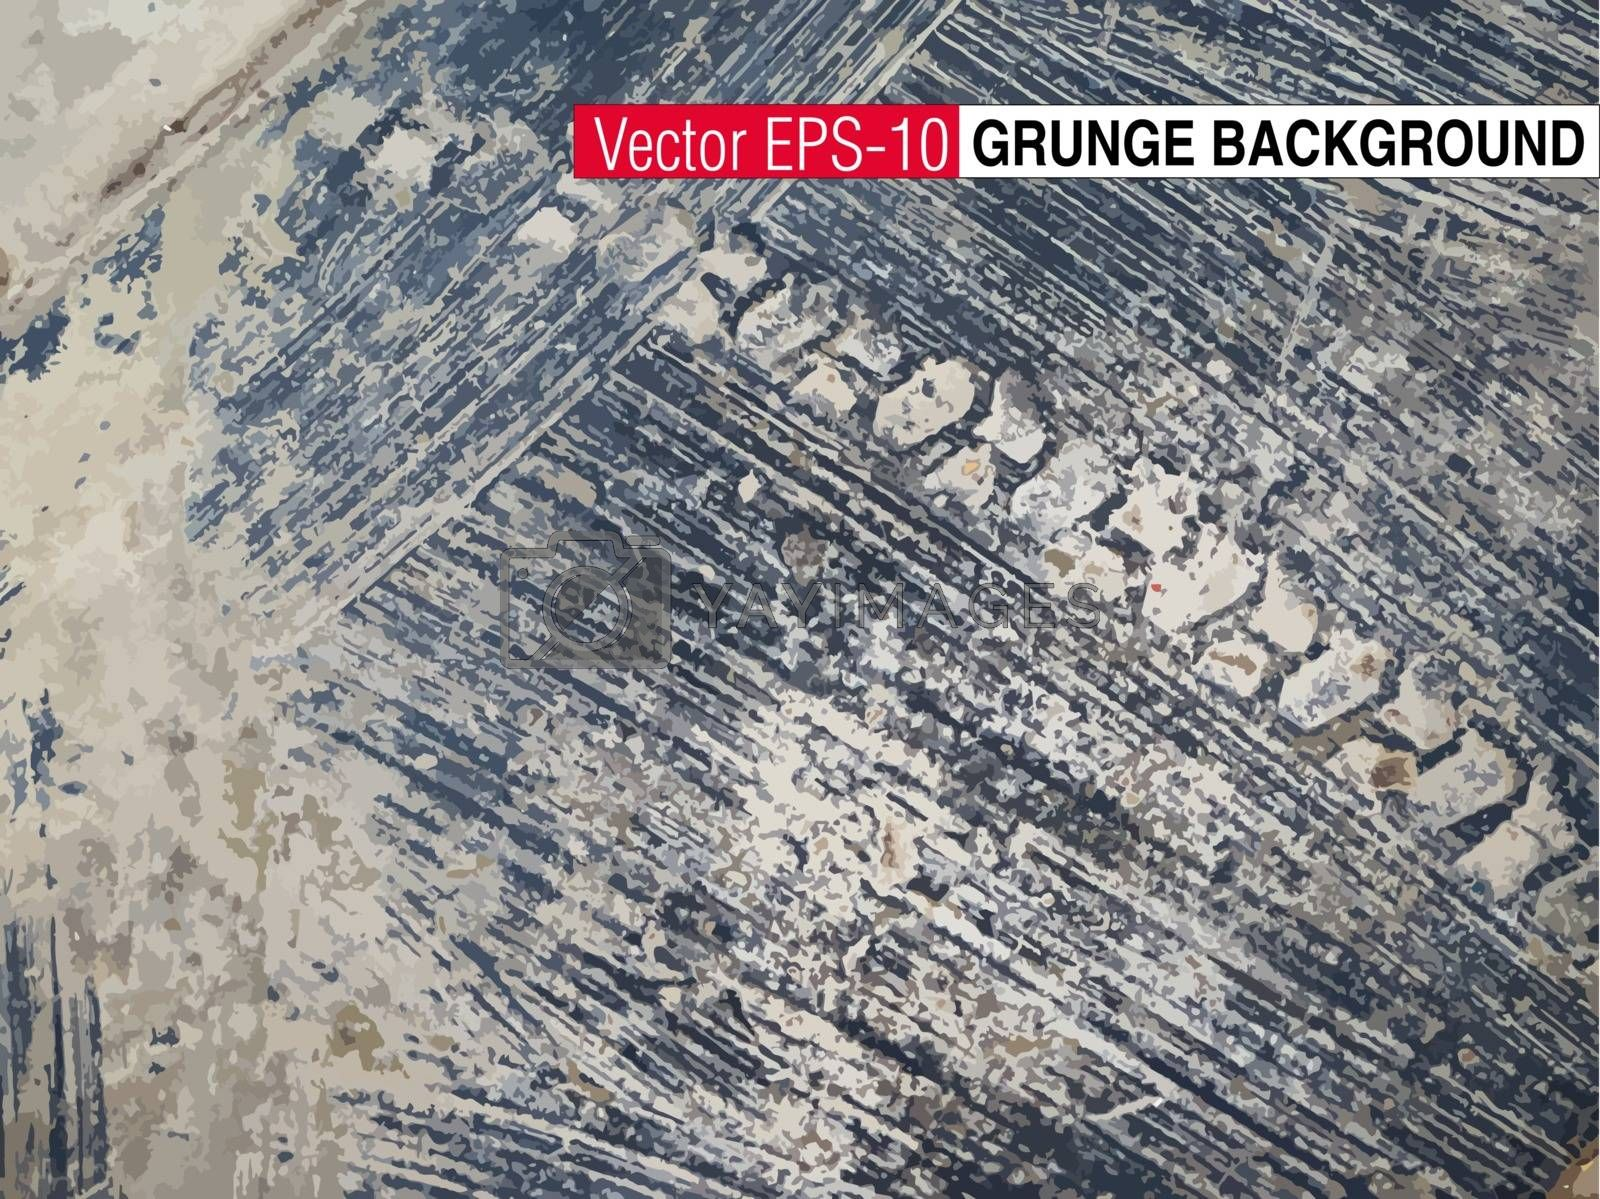 Grunge texture Background by aroas